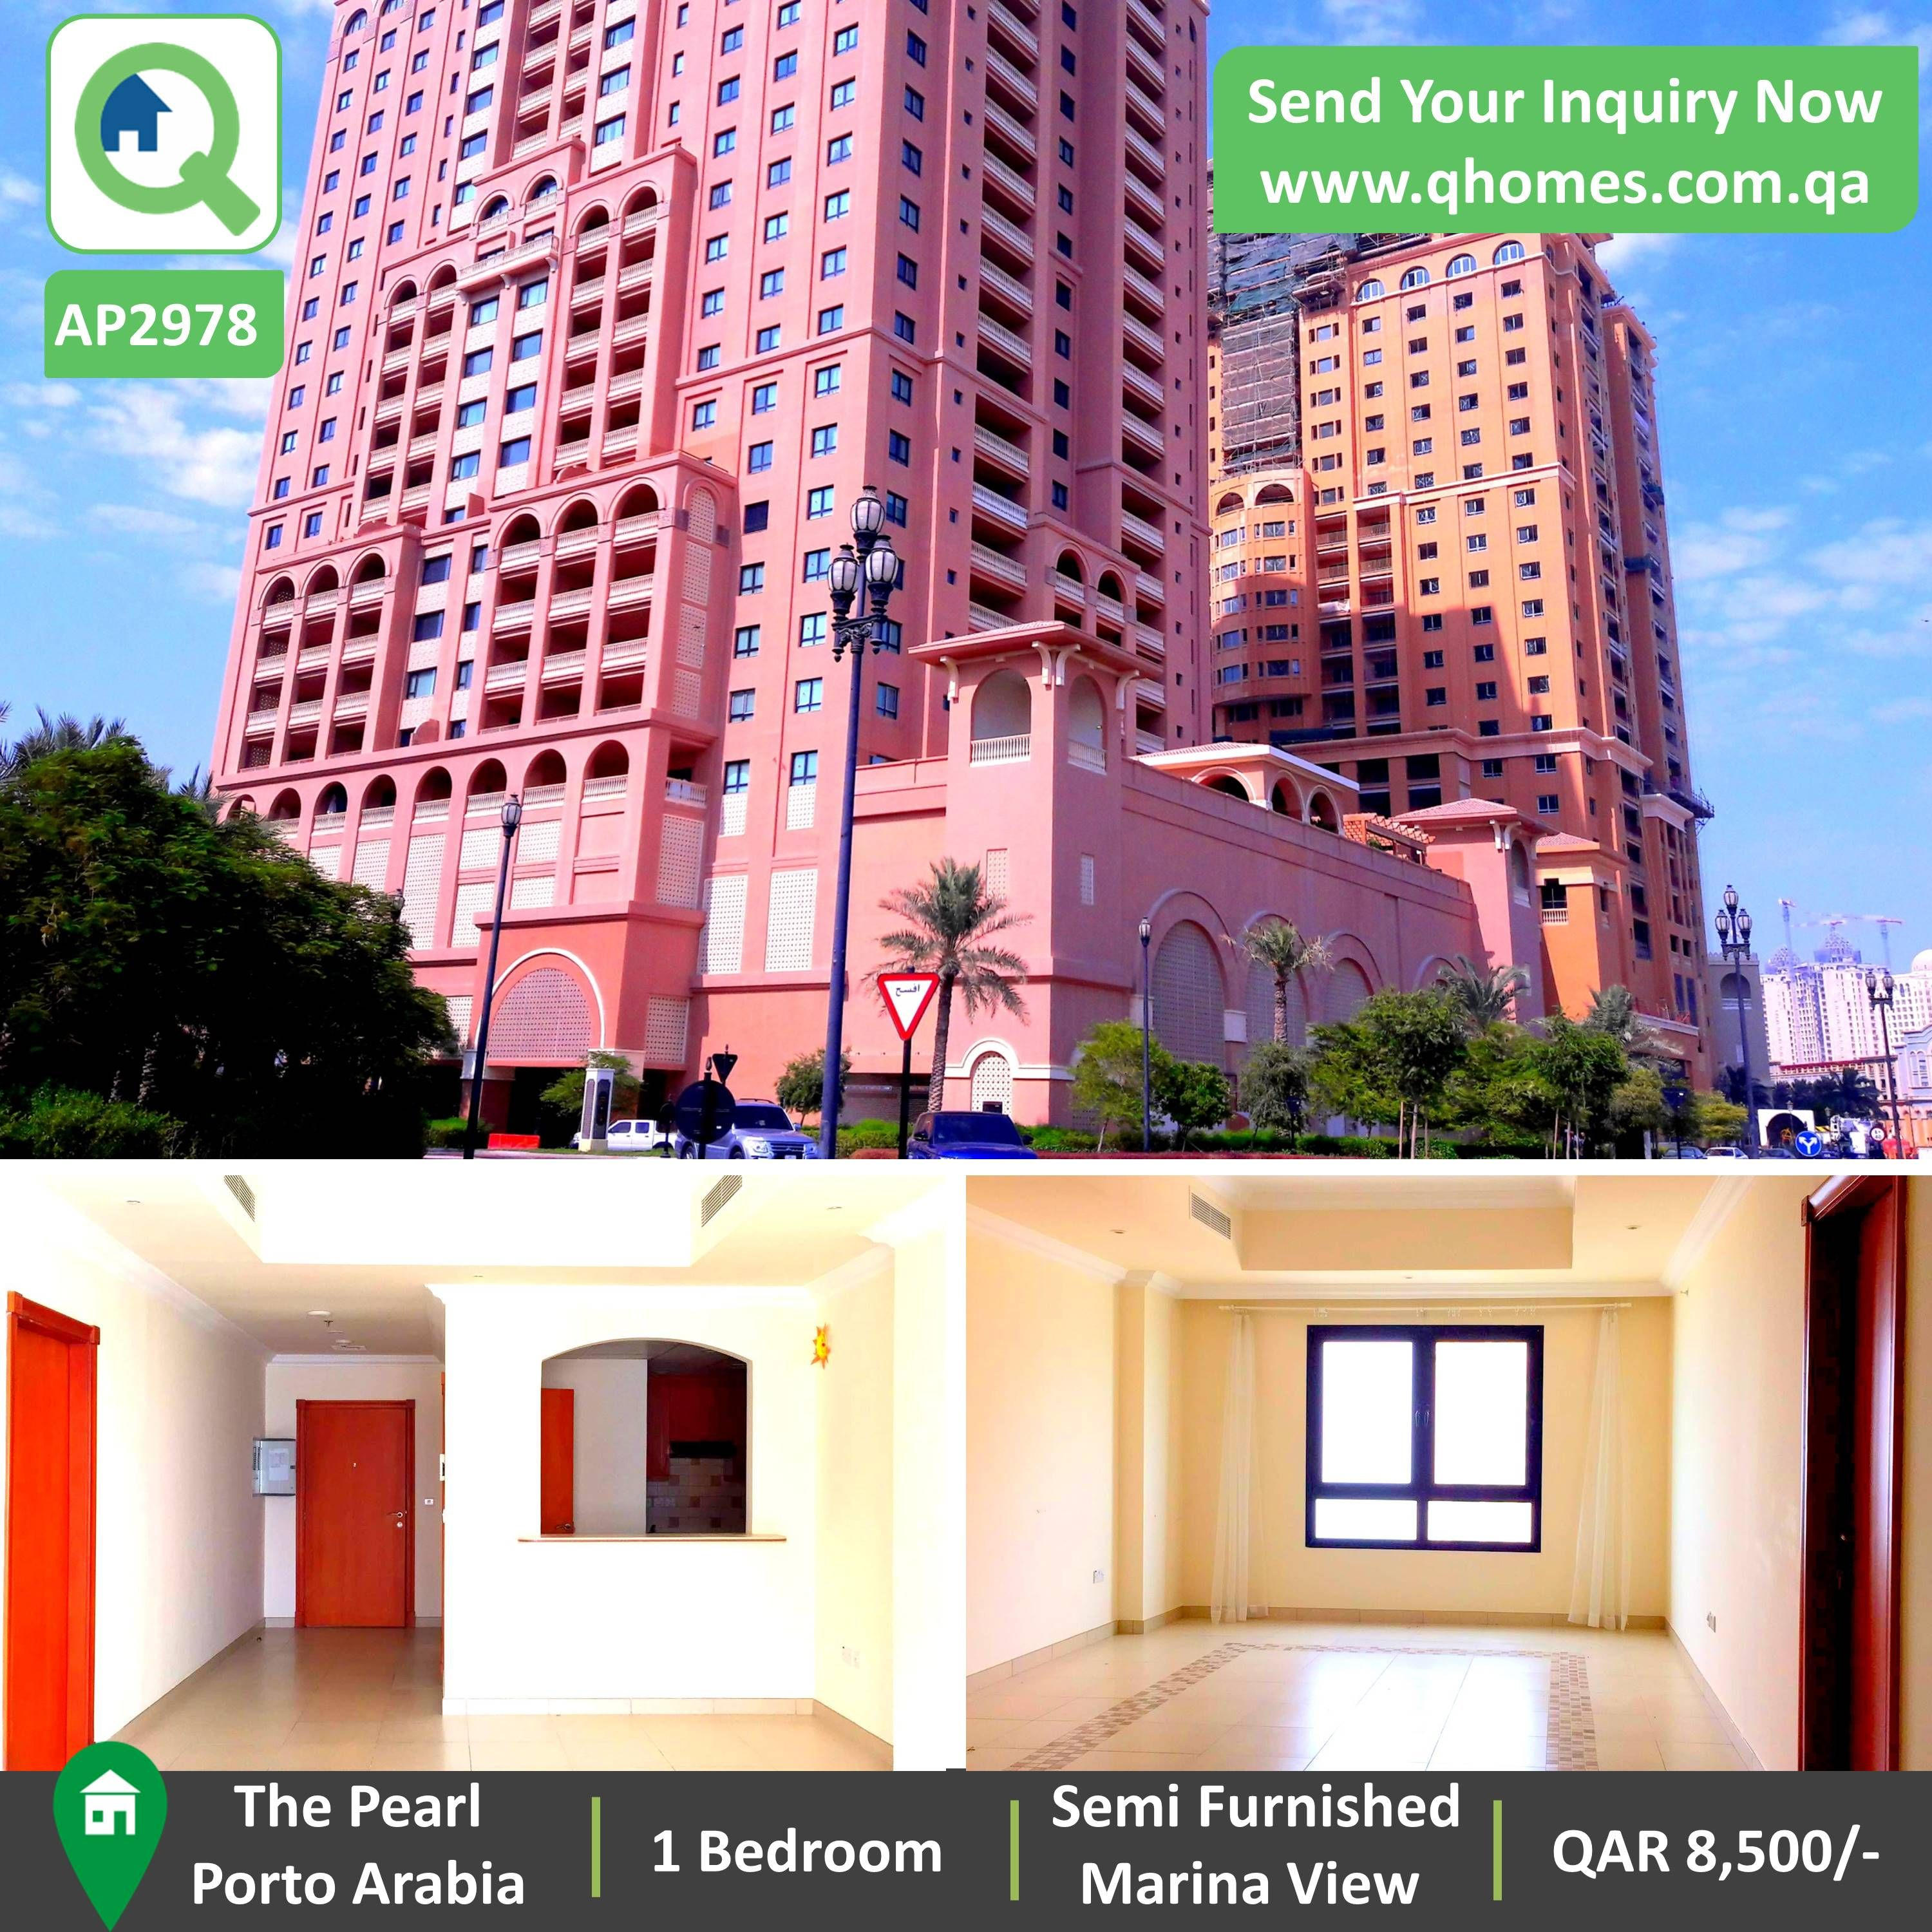 Apartment Rental Help: Apartment For Rent In The Pearl